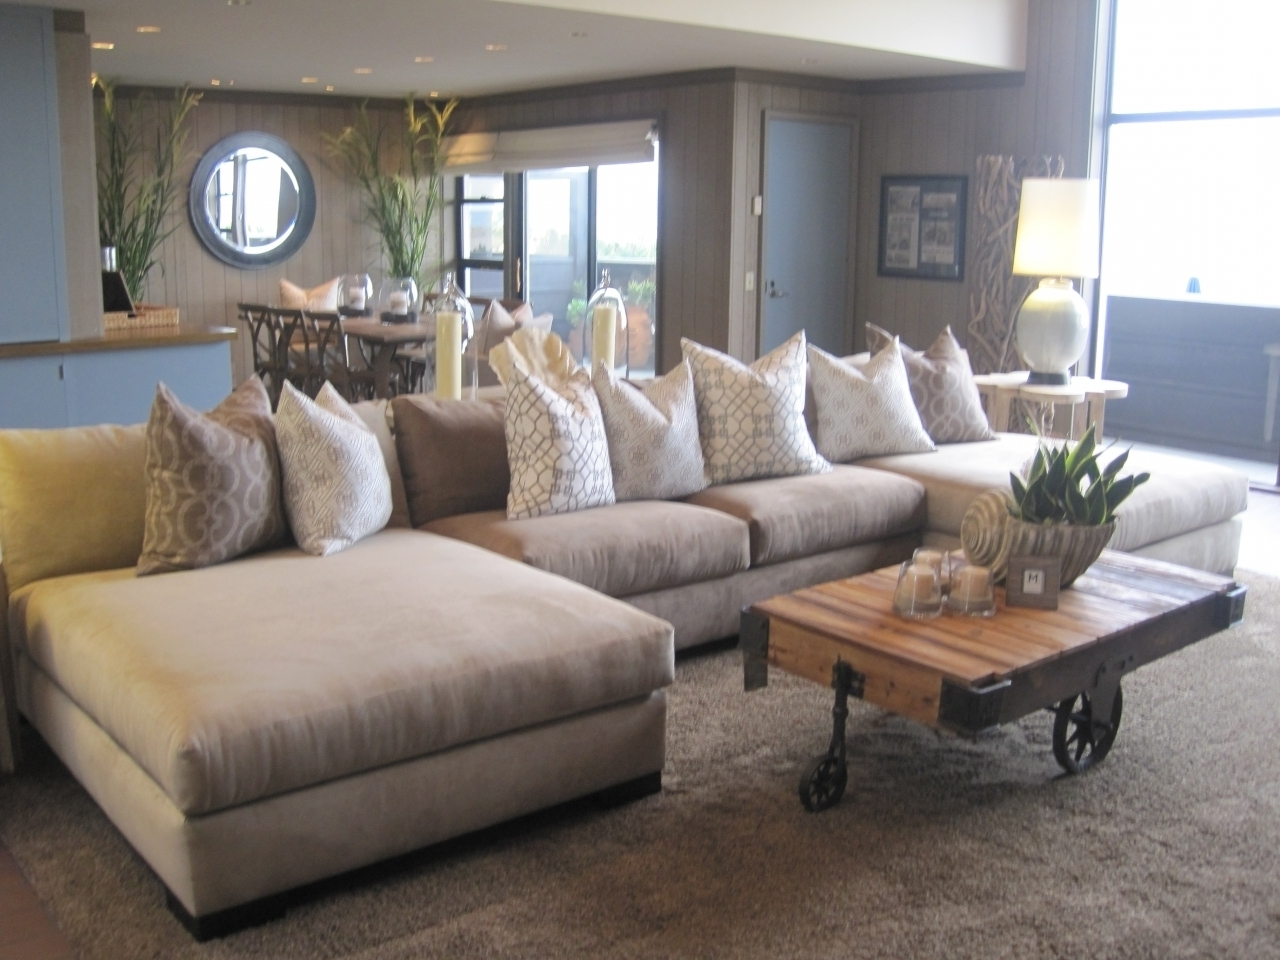 Most Recently Released Sectional Sofas With Oversized Ottoman Within Sofa : Living Room: Sectional With Chaise Lounge (View 7 of 15)